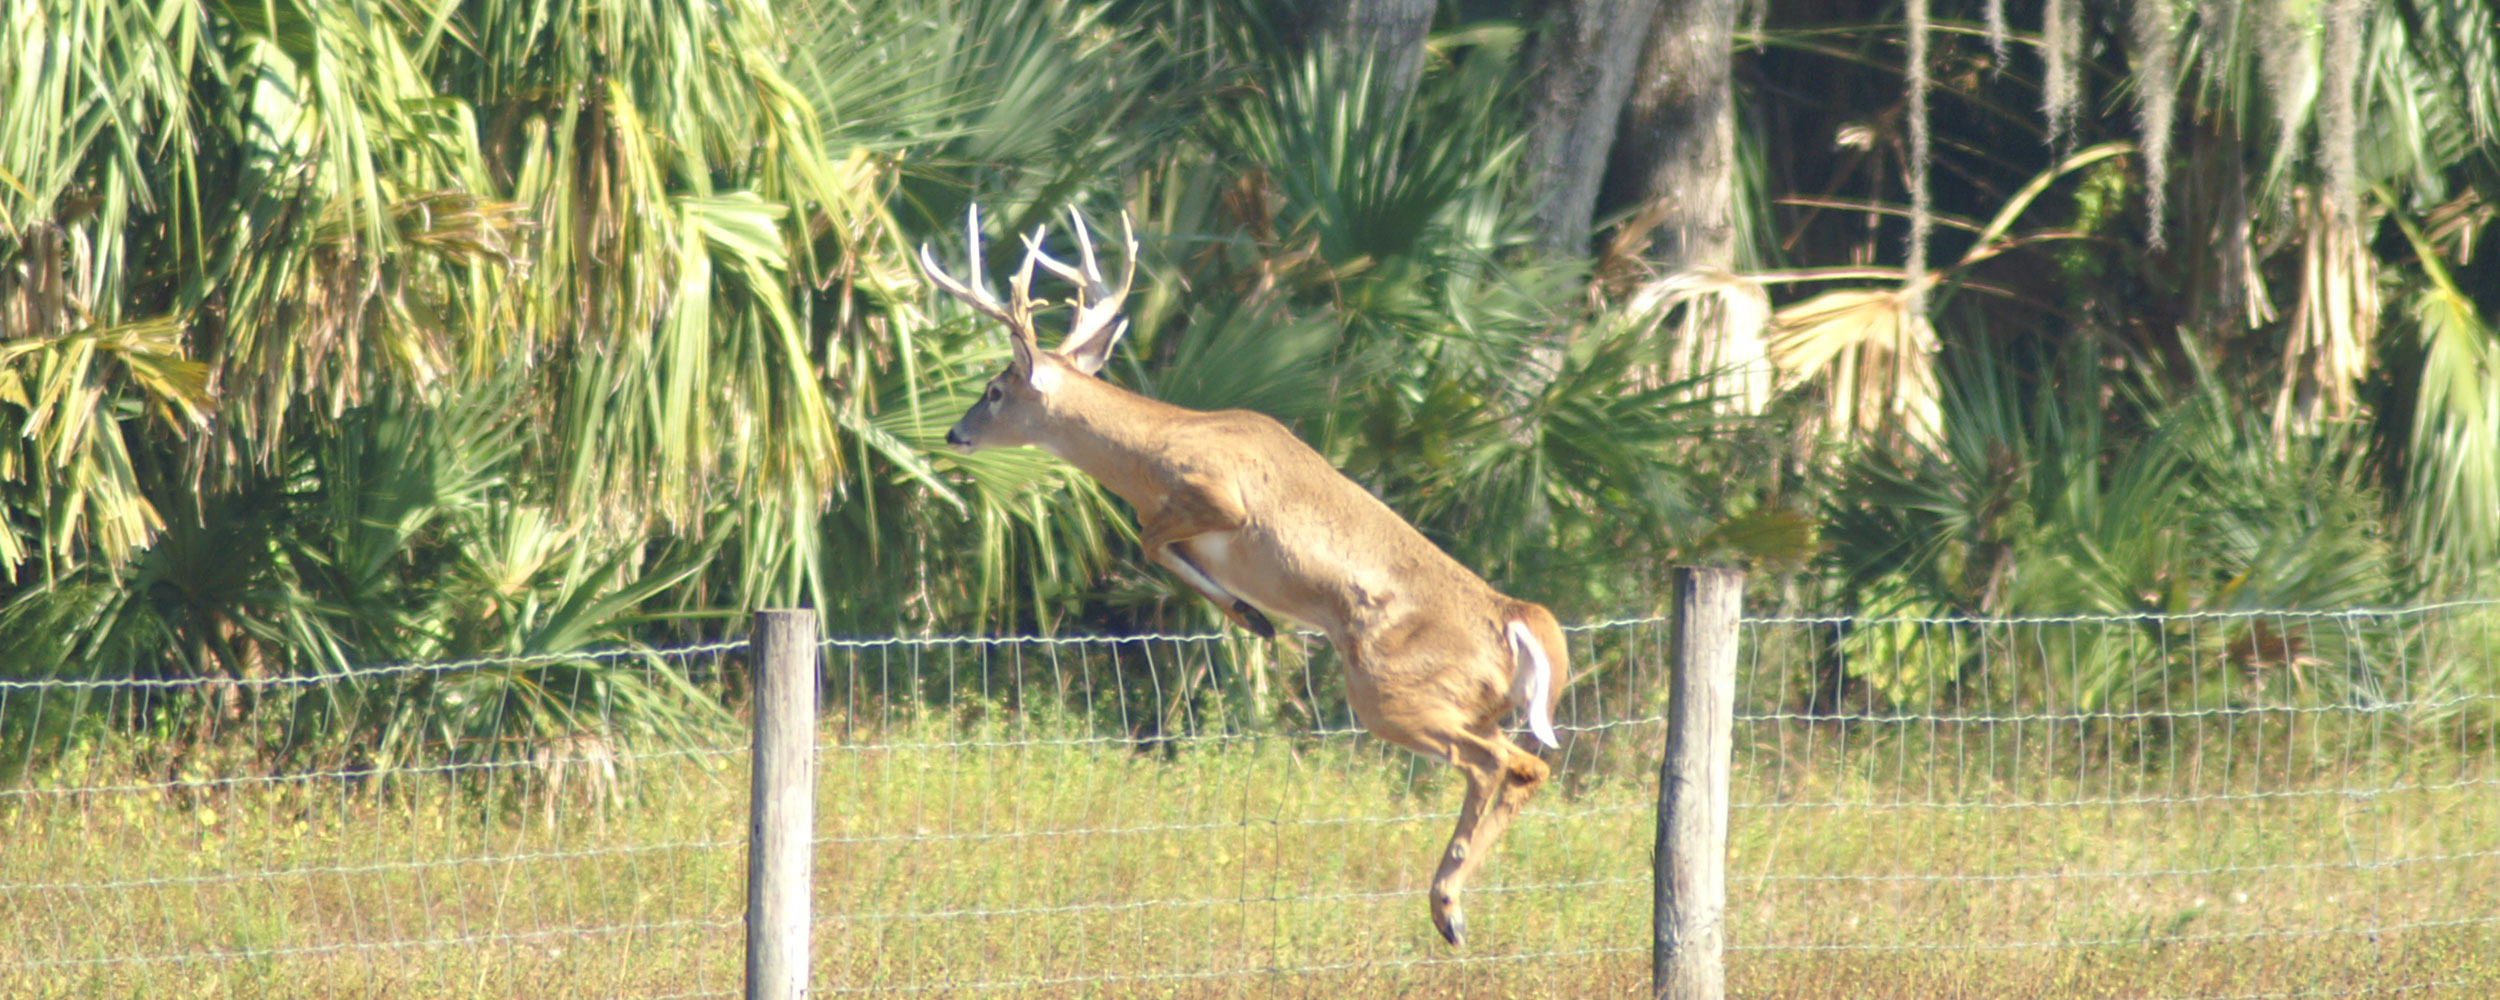 Photo of deer jumping fence on hunting property in Florida